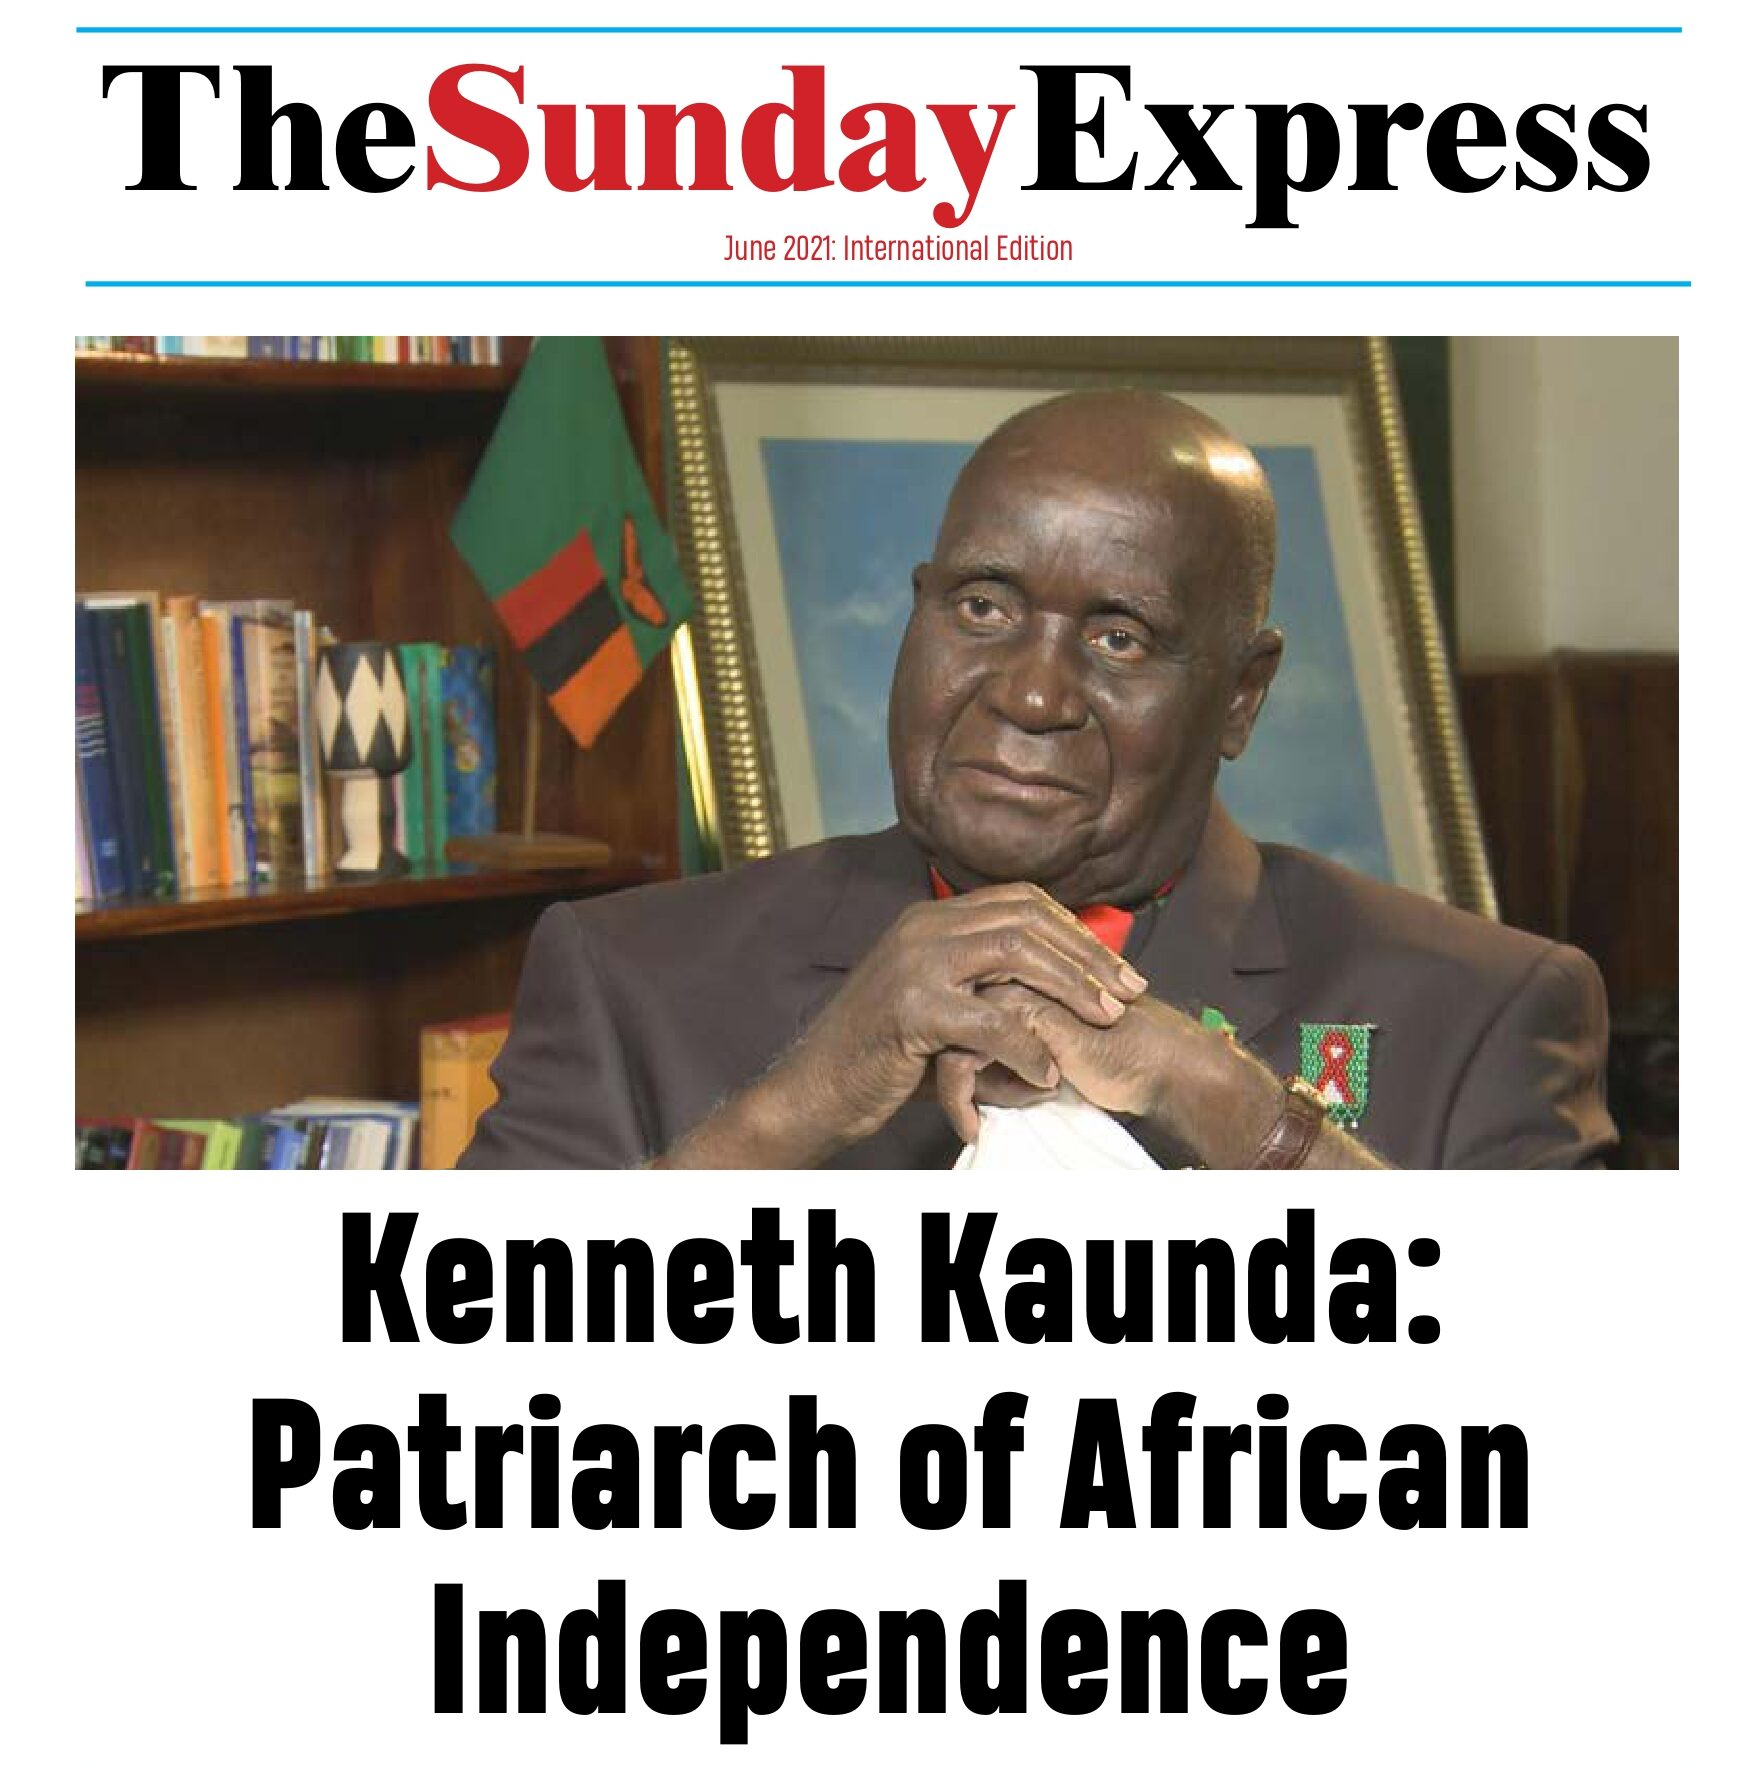 The Sunday Express June20: Tribute Edition to Patriarch of African Freedom: Kenneth Kaunda